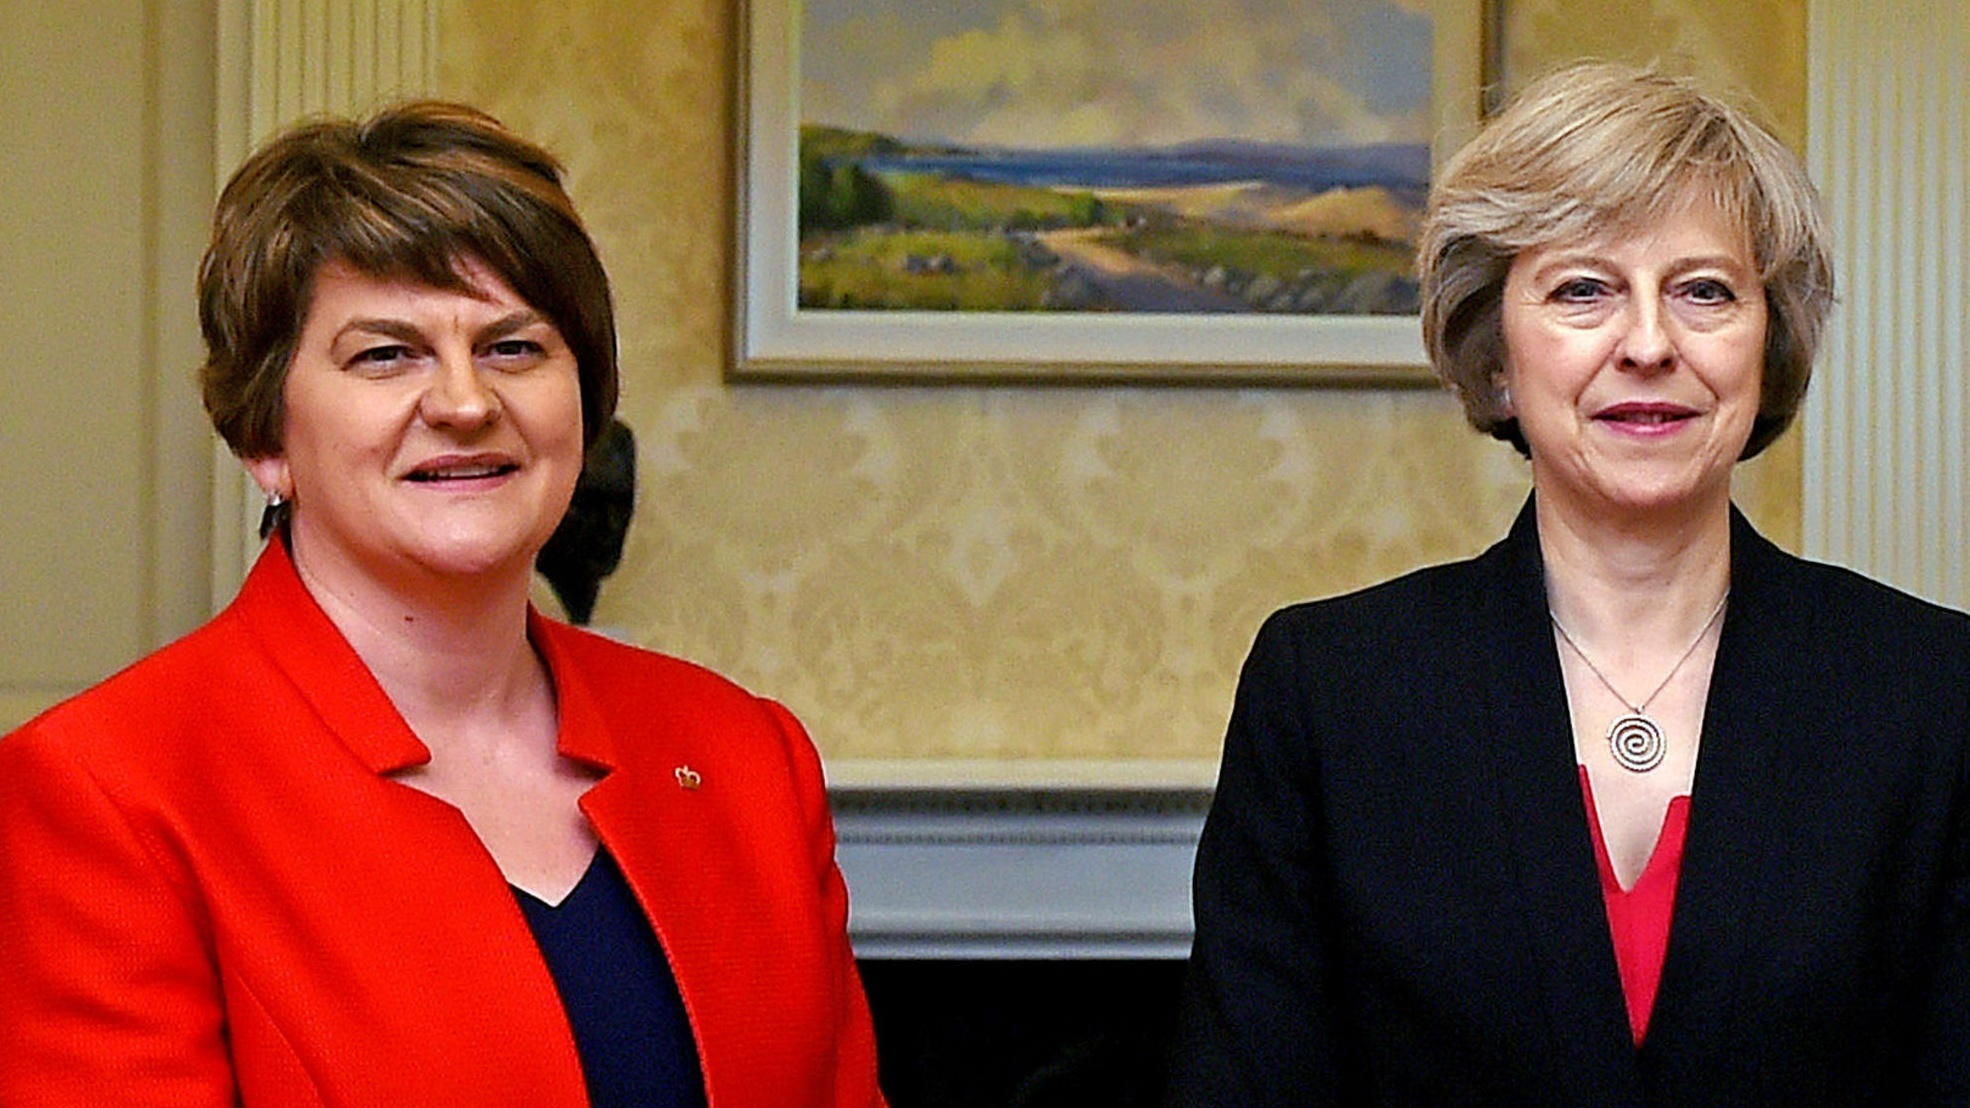 Kenny warns May 'do not put peace agreement at risk'